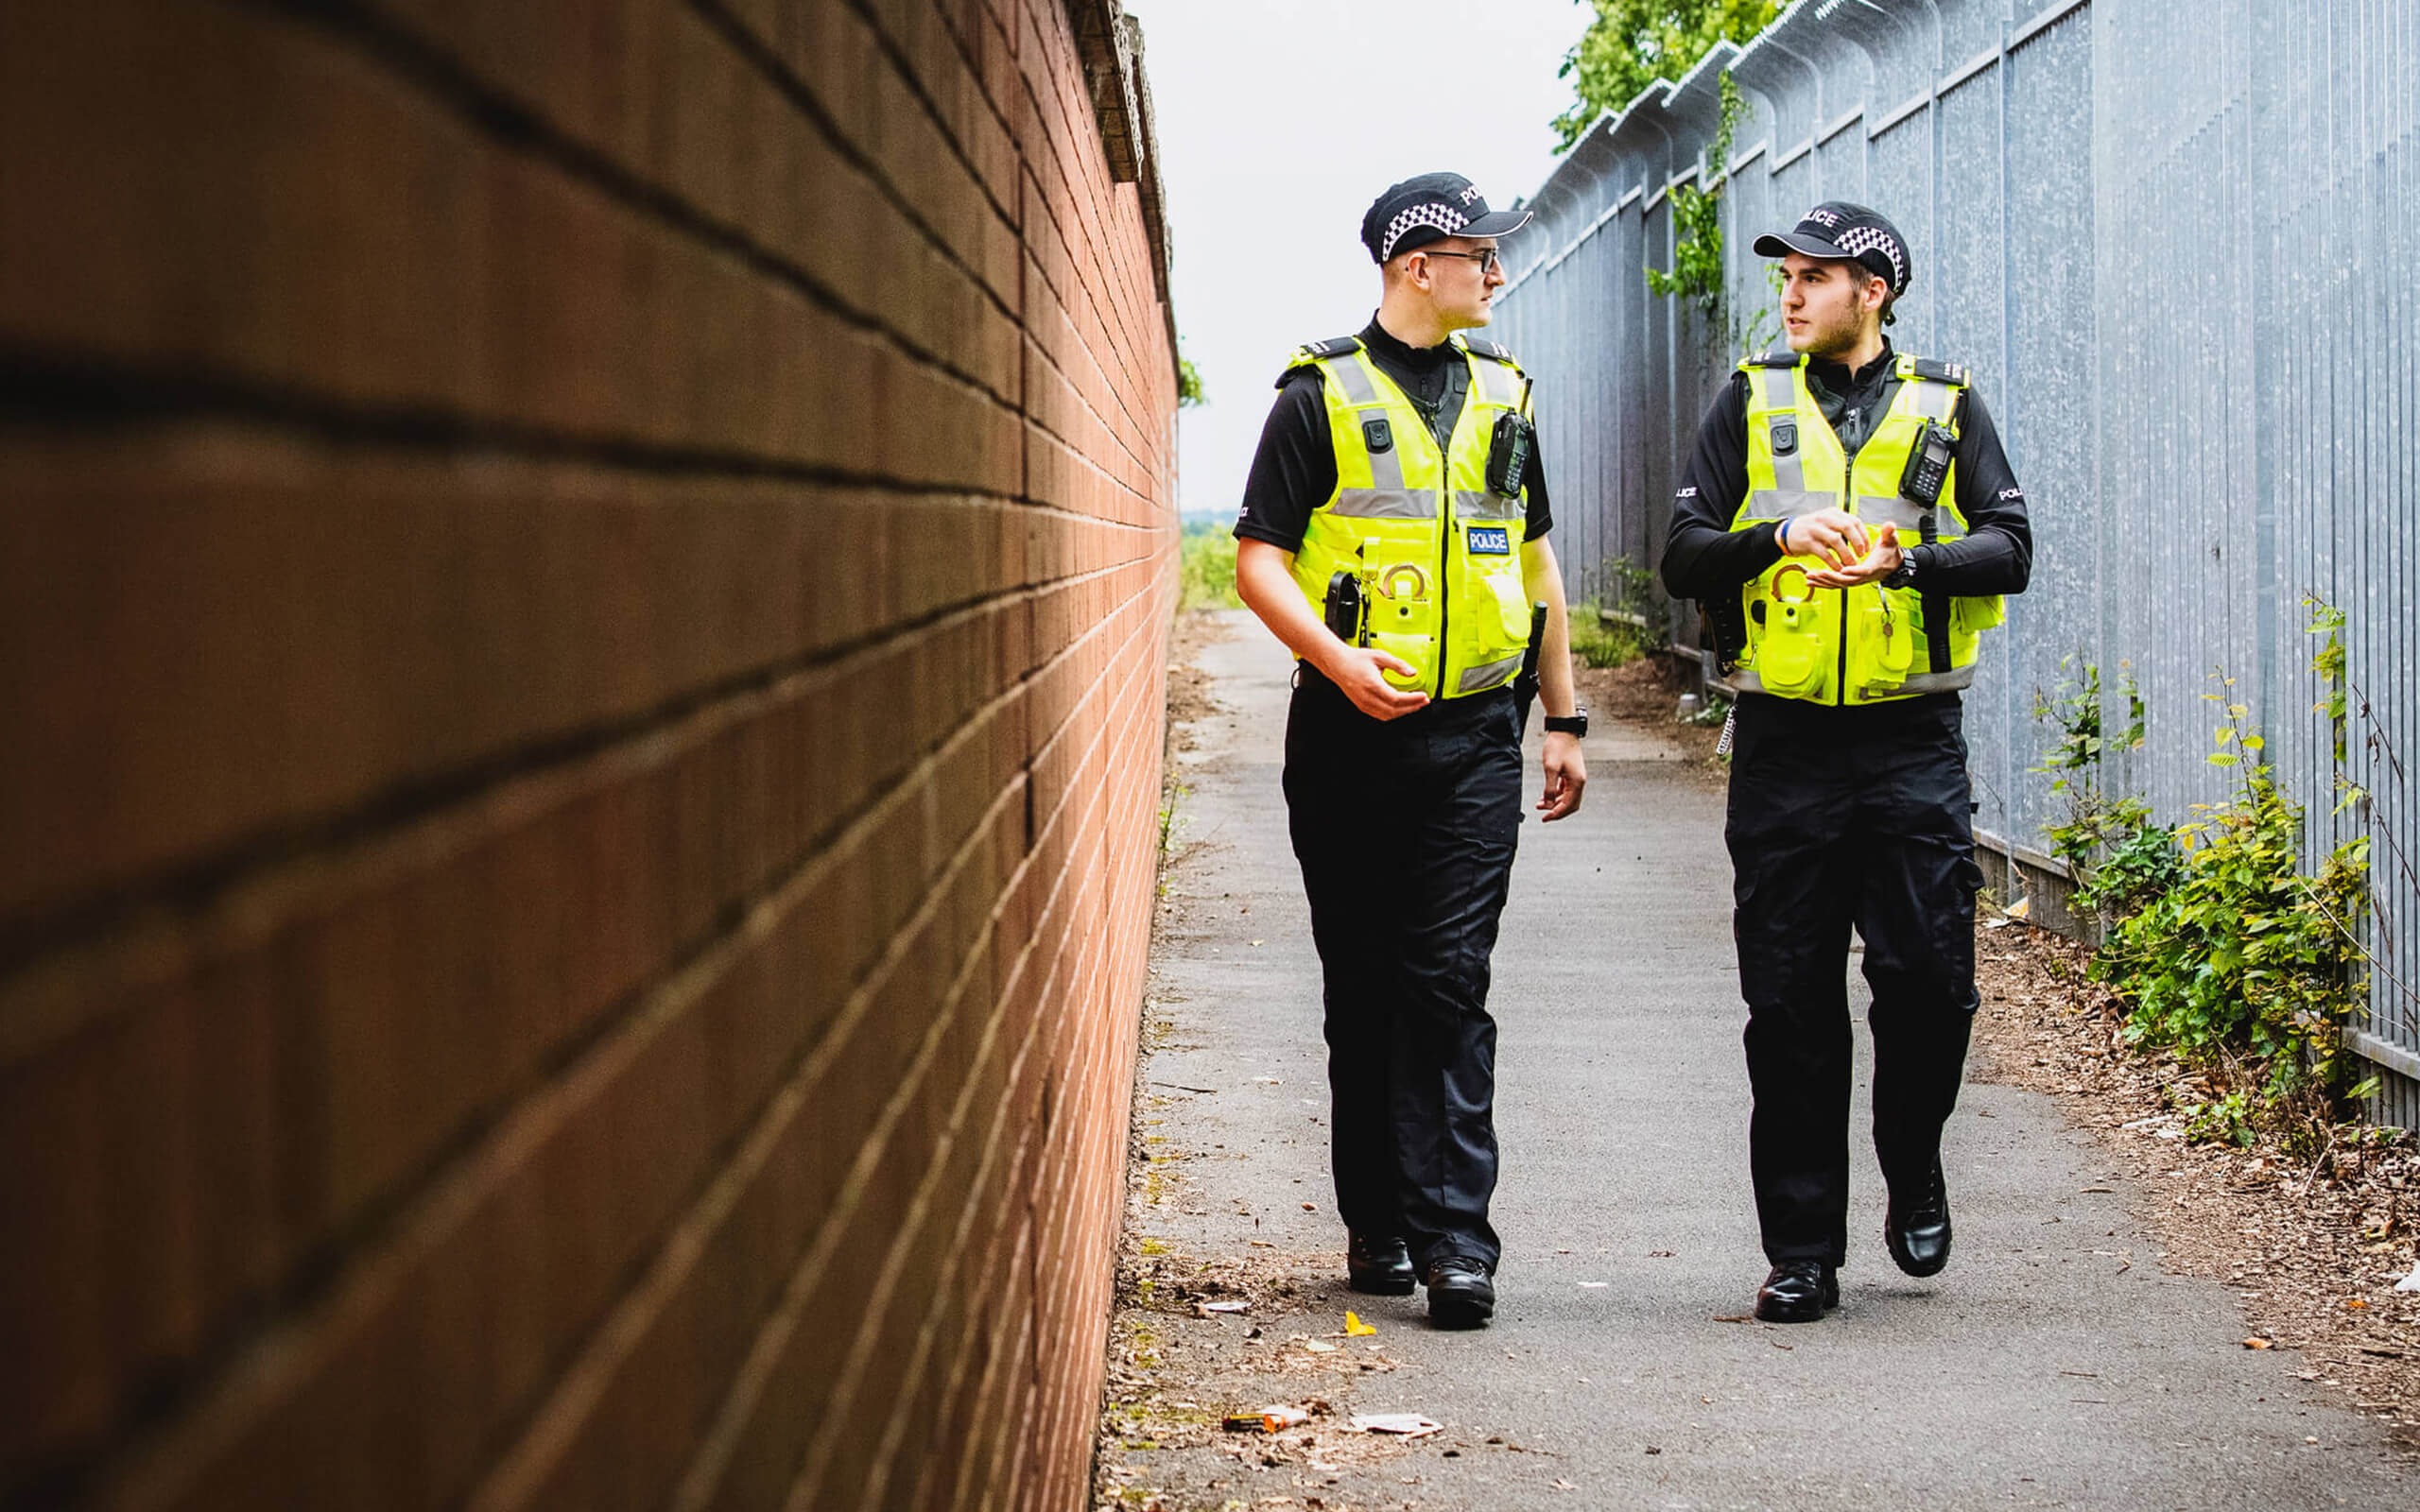 Two policing students walking down an ally way talking